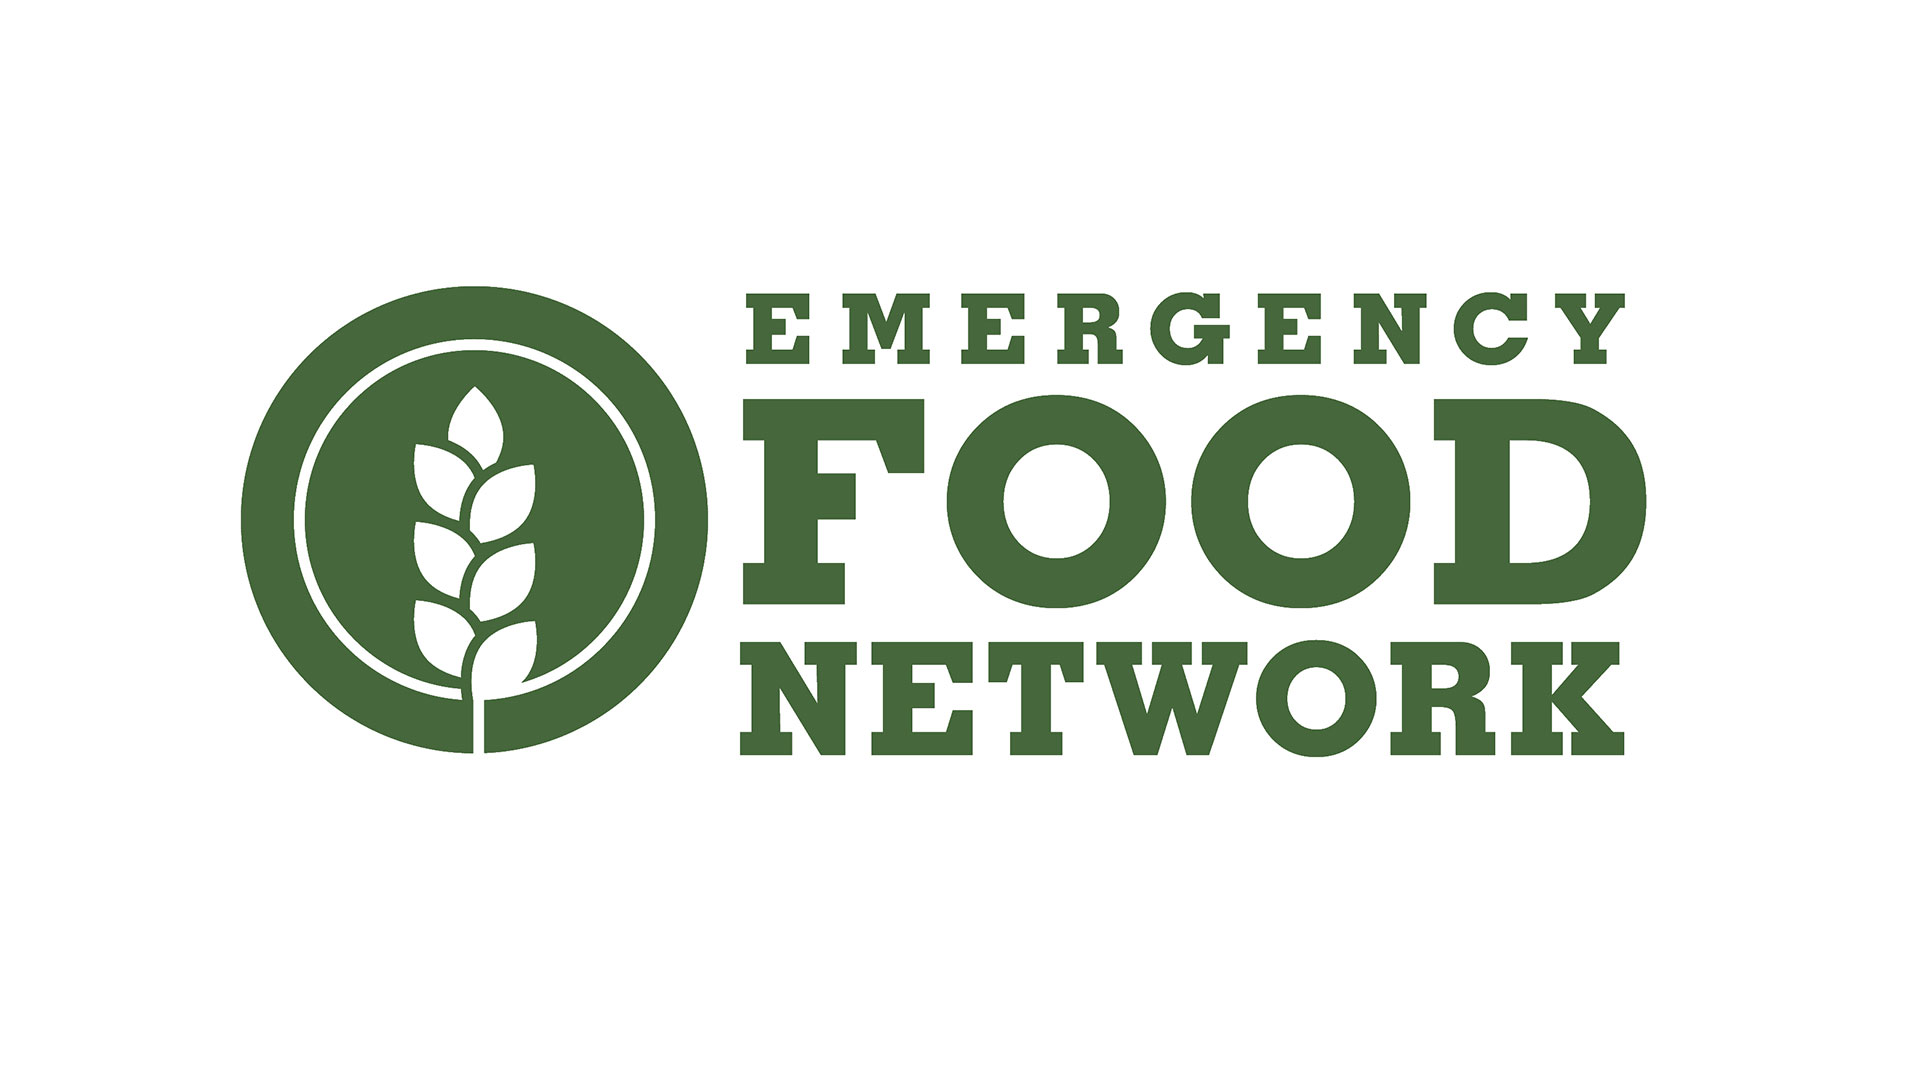 We partner with the Emergency Food Network. Read on to learn more.